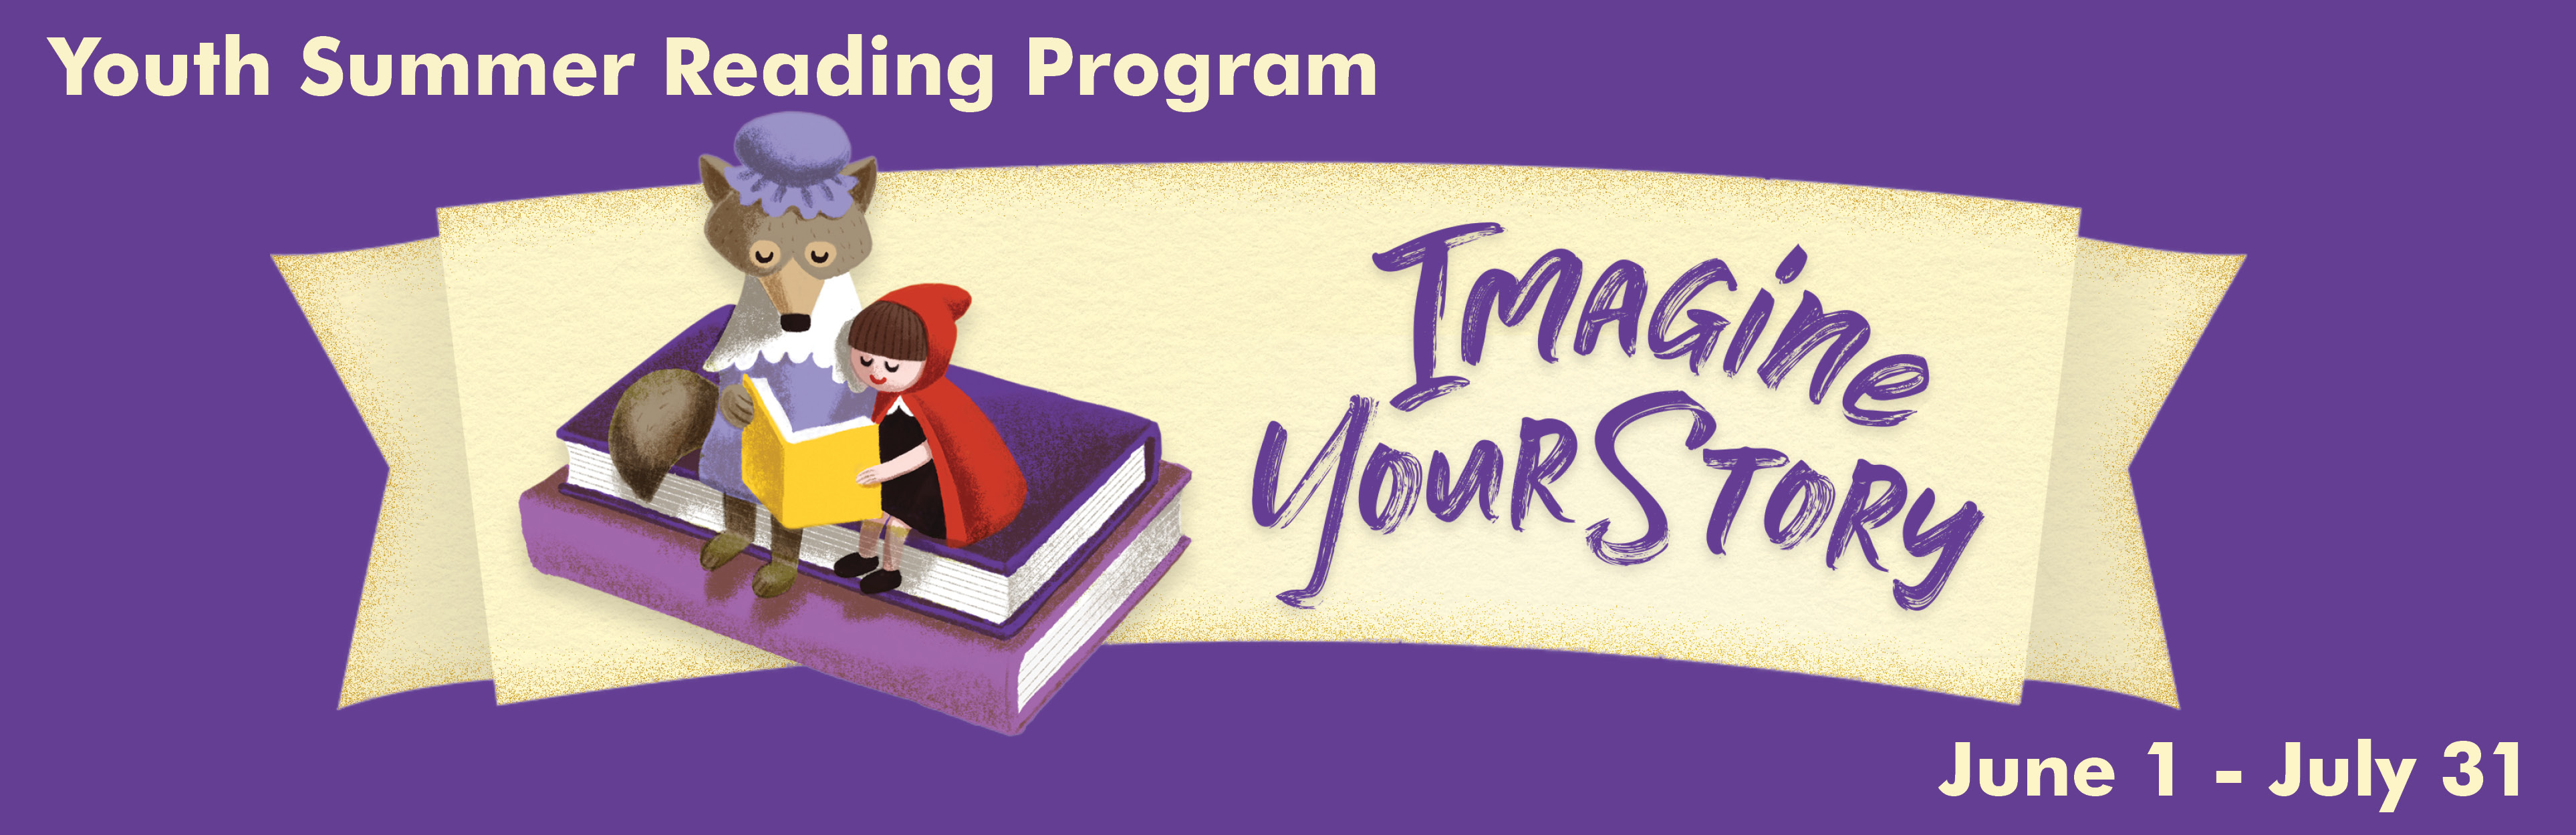 Youth Summer Reading Program, June 1 0 July 31